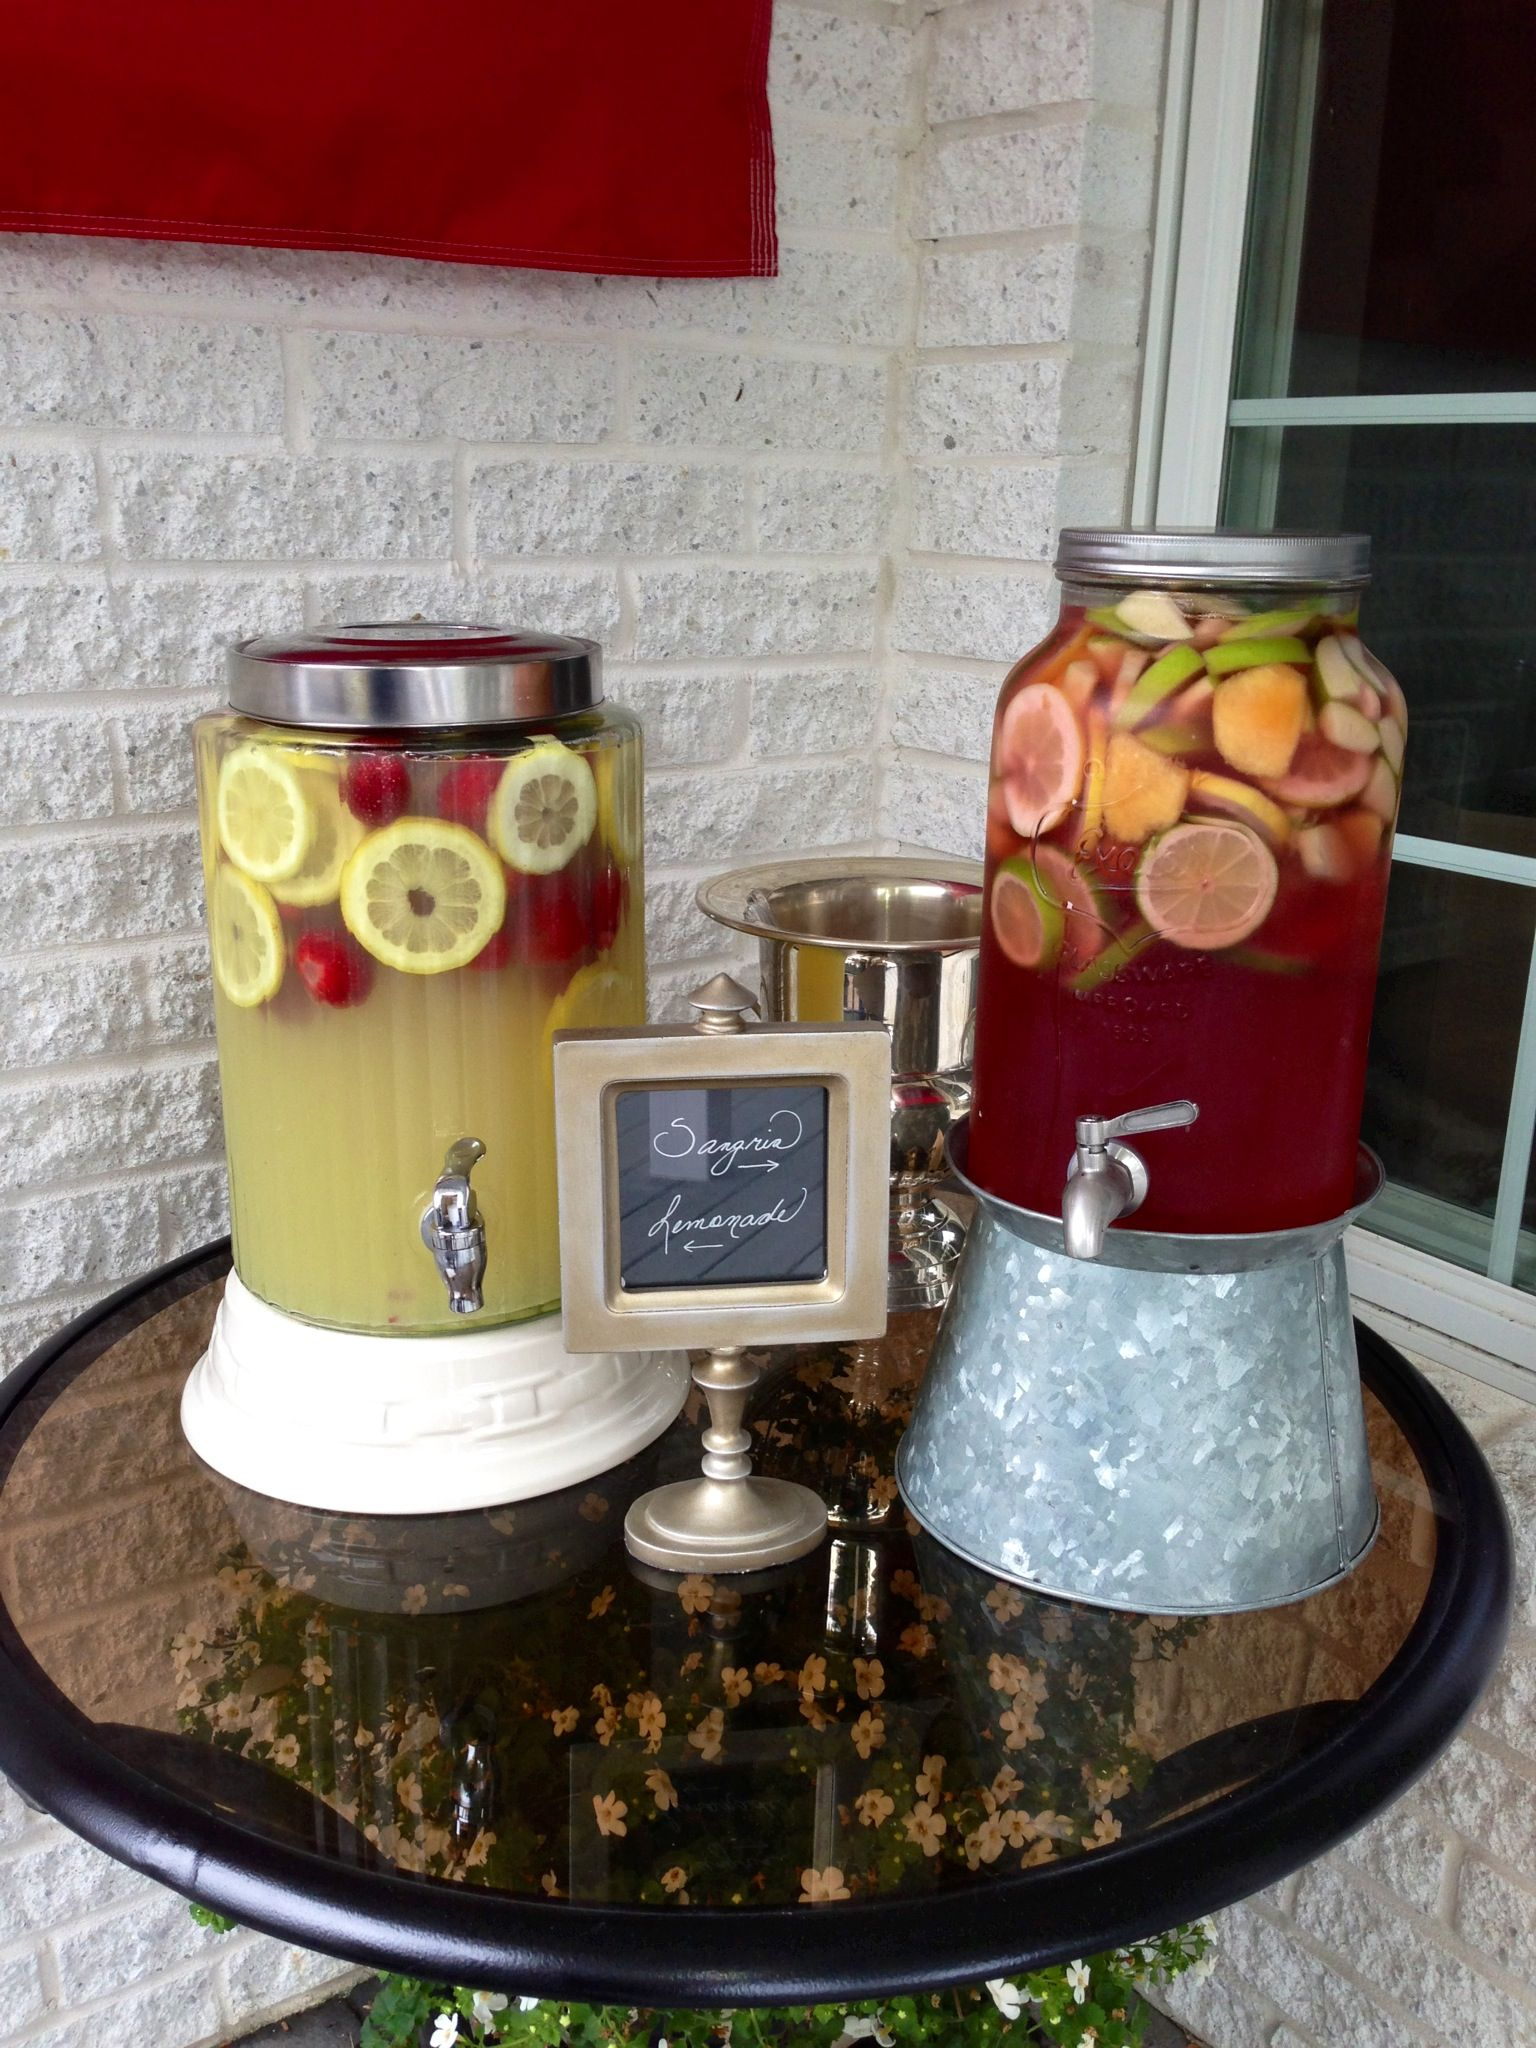 Rustic Decorating Ideas Graduation Drinks Looking Pretty At A Graduation Party I Catered